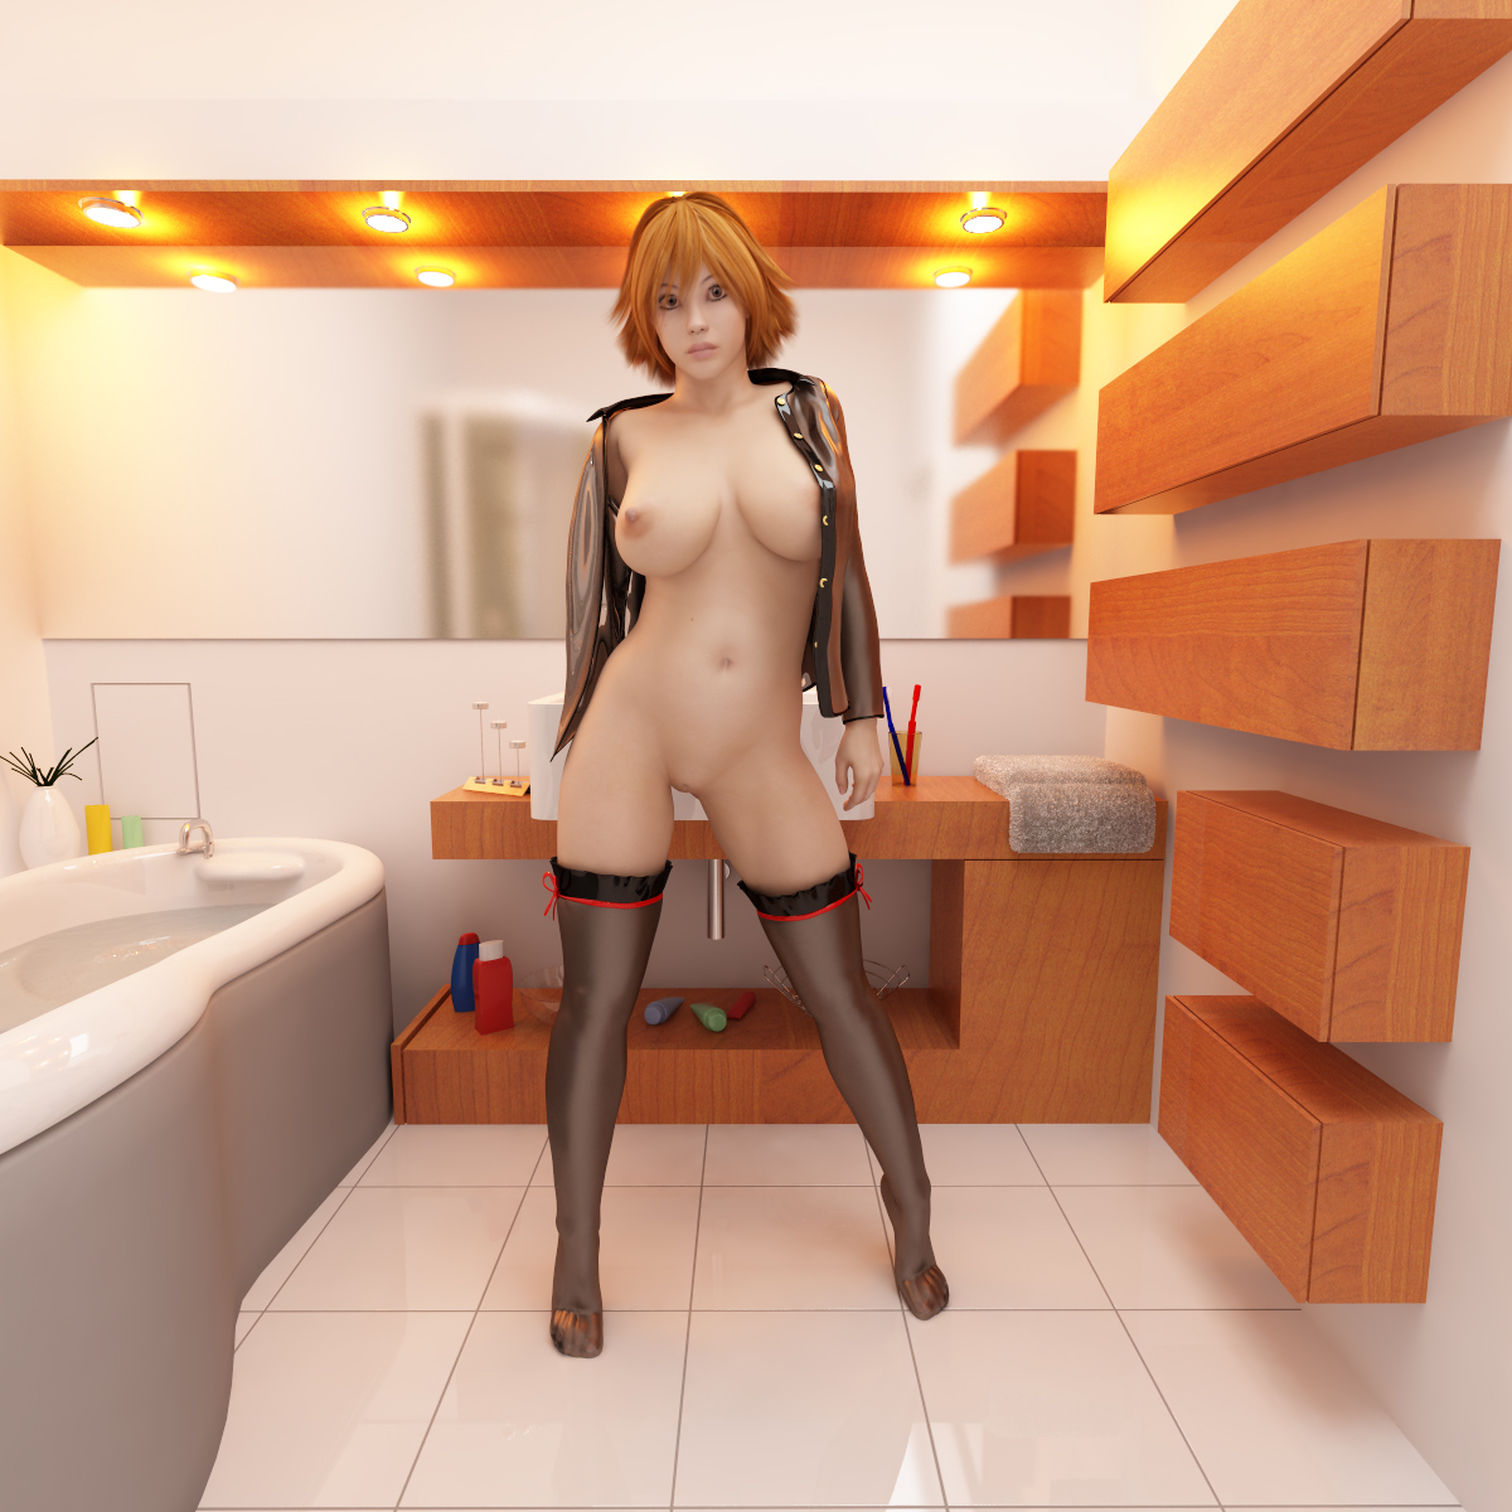 Sexy 3d hentai girl model wallpaper erotic videos